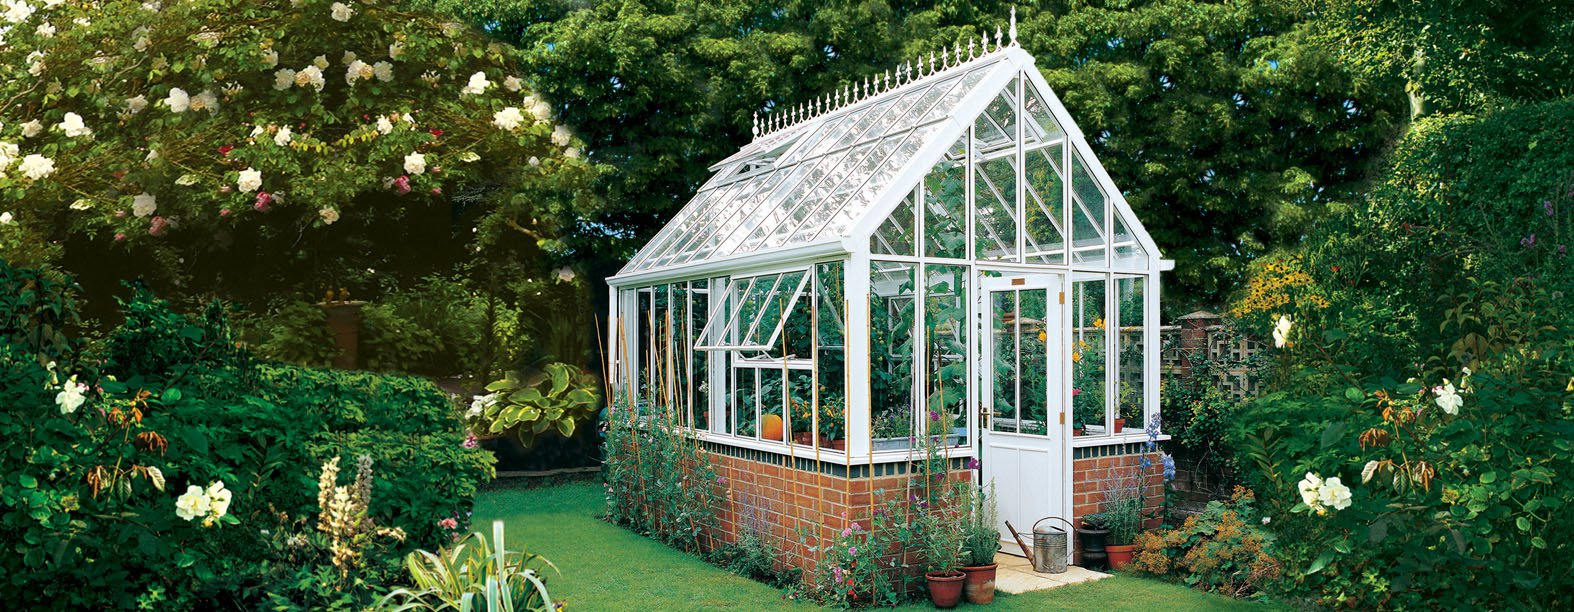 Victorian greenhouse plans designs for Build a victorian greenhouse